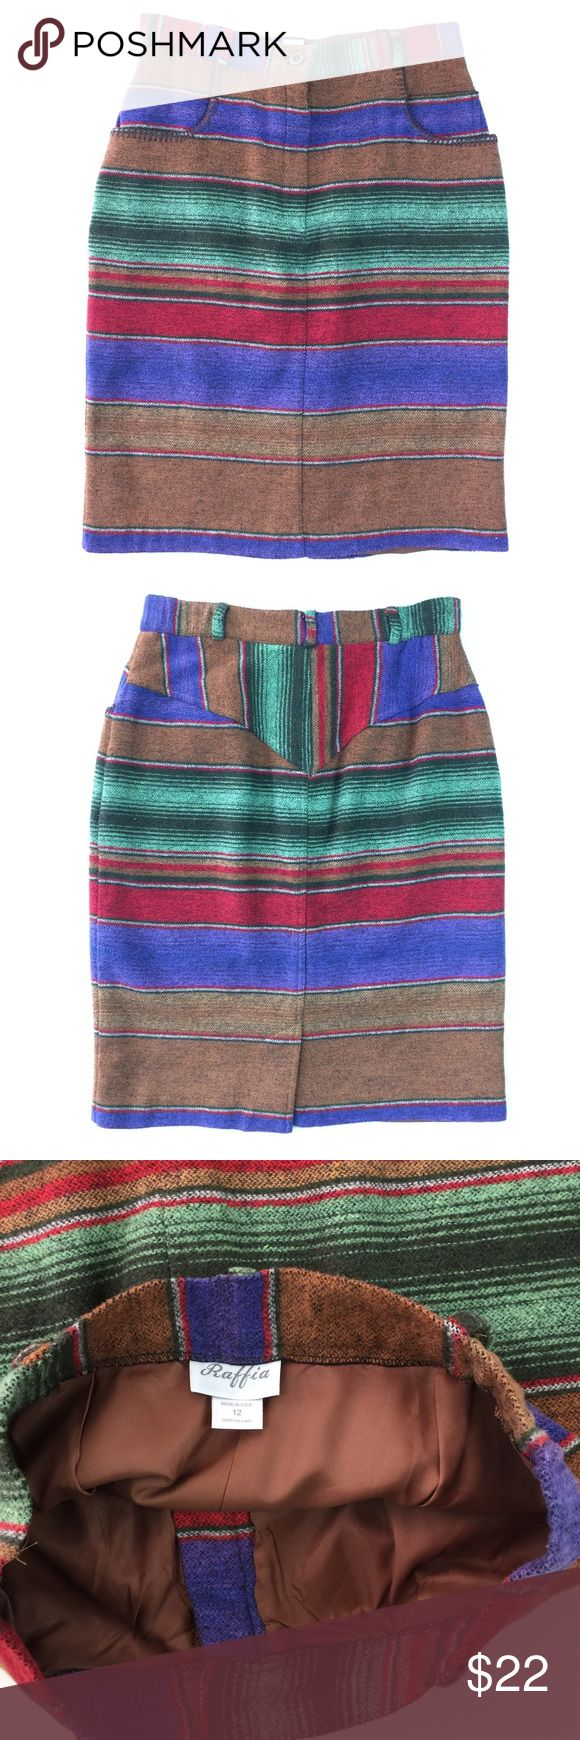 """Vintage 90's Striped Southwestern Blanket Skirt Awesome vintage southwestern skirt. Multicolor stripe soft woven blanket fabric with whip stitch edging on pockets. Very good vintage condition. Made in the USA. 50% cotton, 40% acrylic, 5% rayon, 5% other. Size 12. High waisted. 26"""" long. 15 1/2"""" waist flat. Vintage Skirts Pencil"""